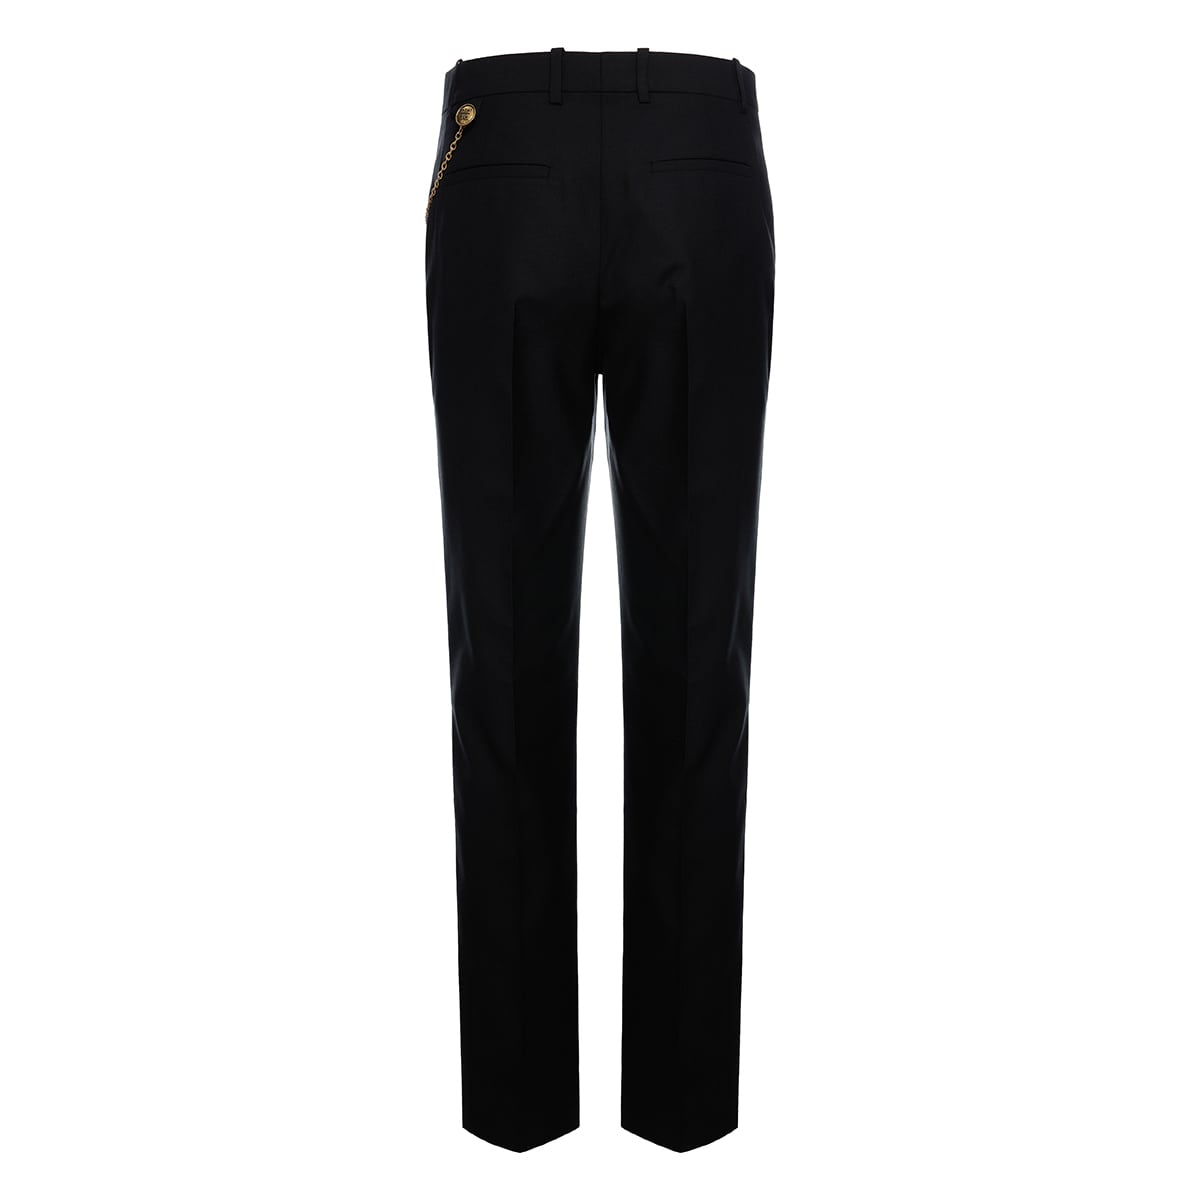 Chain-embellished cropped tailored trousers